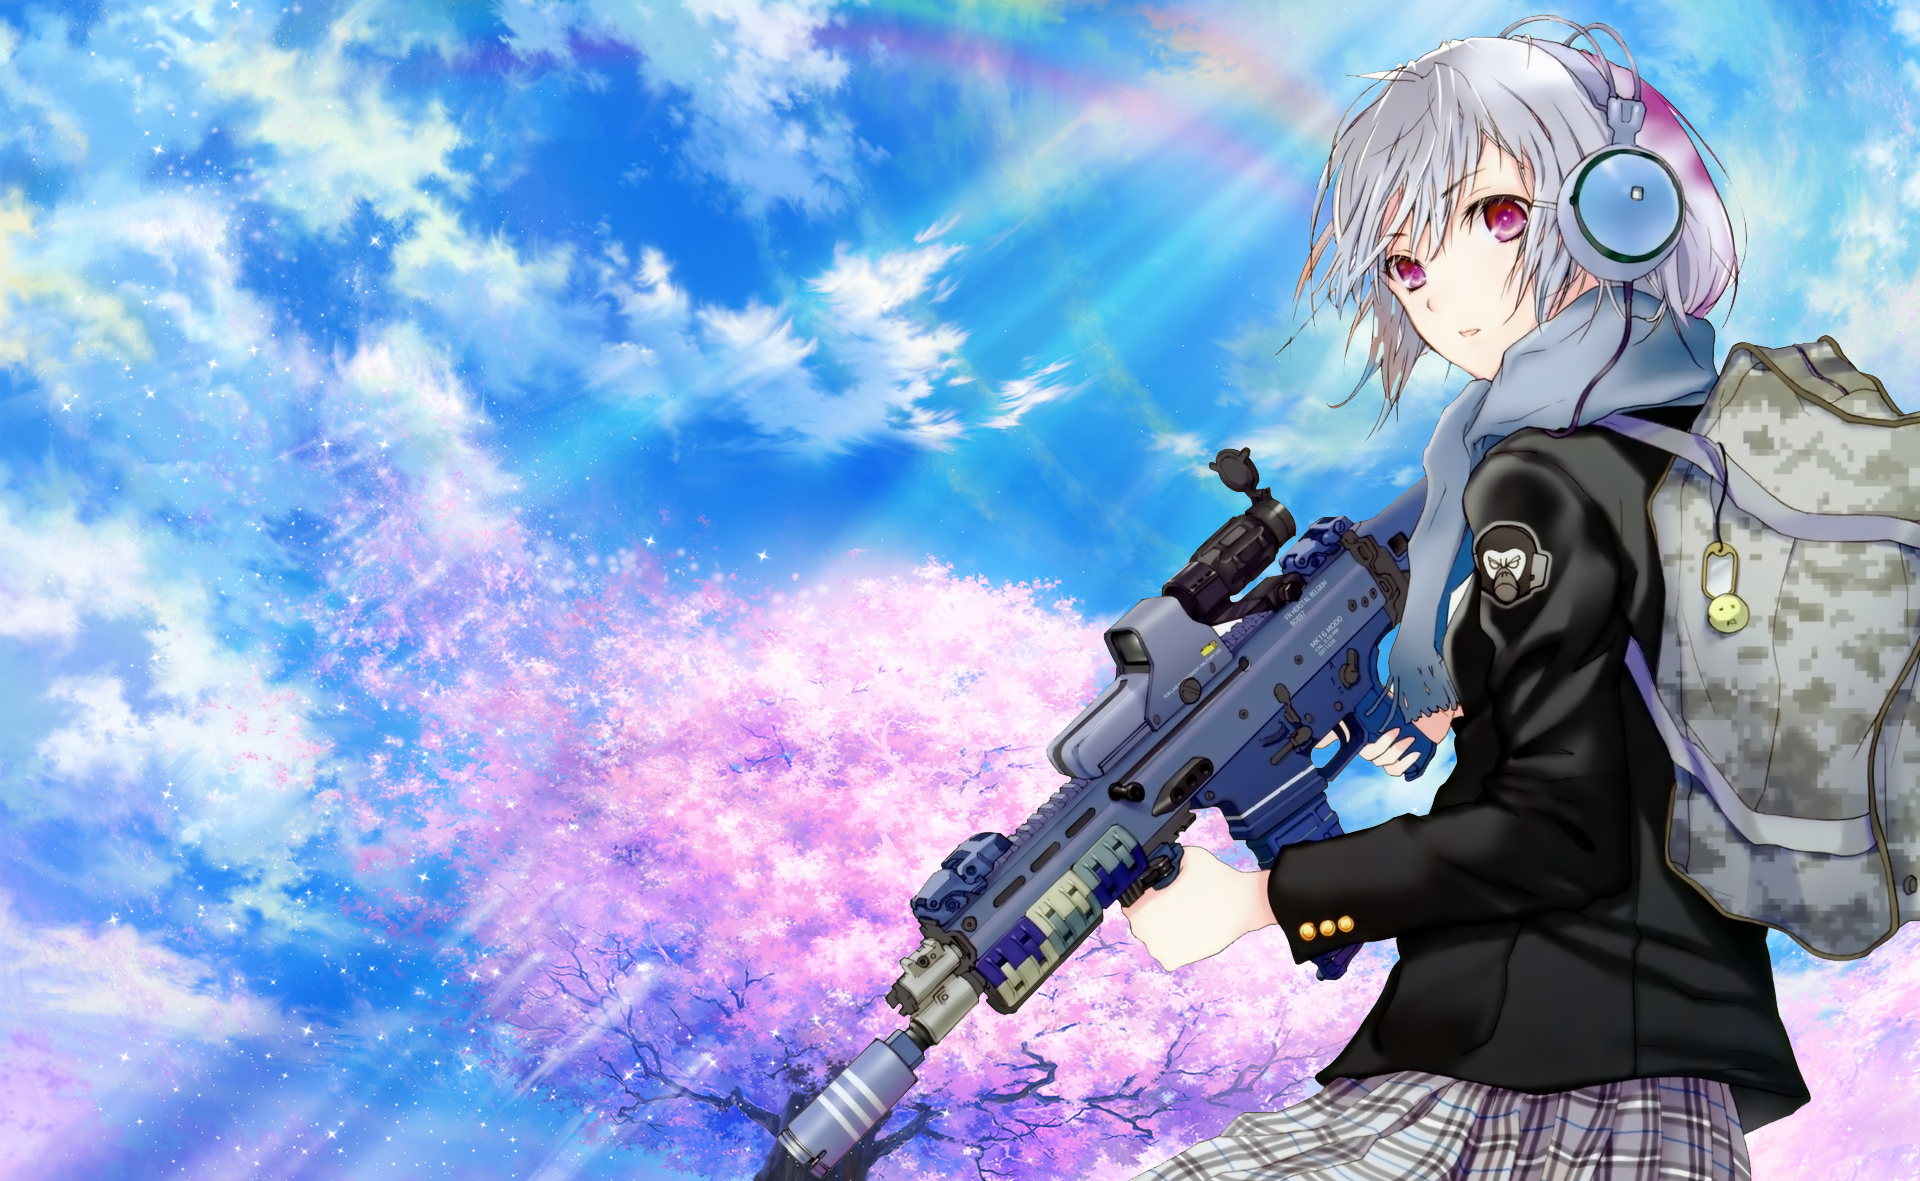 anime girl with gun awesome | anime girl with gun | Pinterest